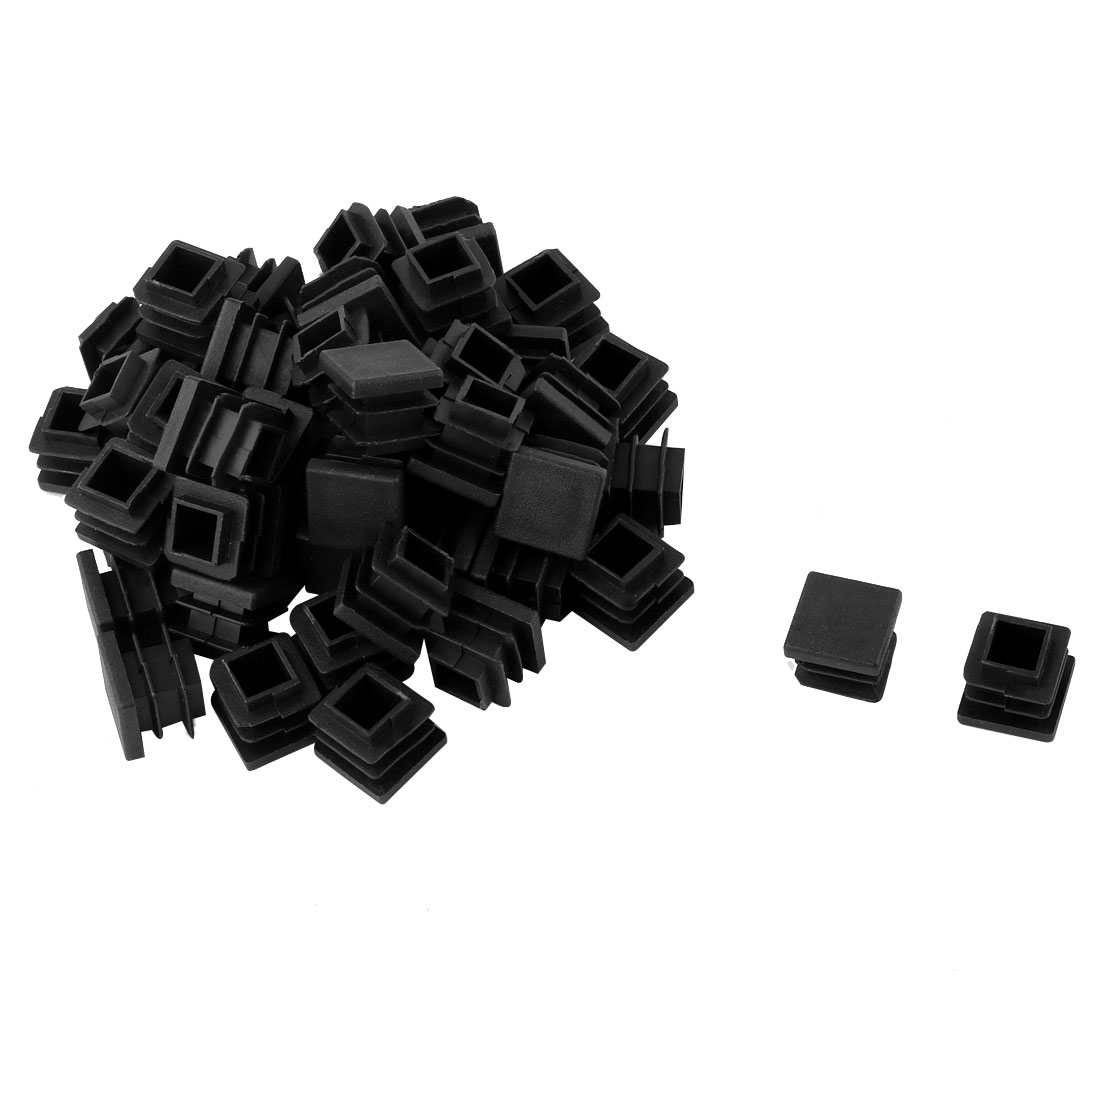 Plastic Square Design Tube Insert End Blanking Cover Cap Black 16 x 16mm 50pcs